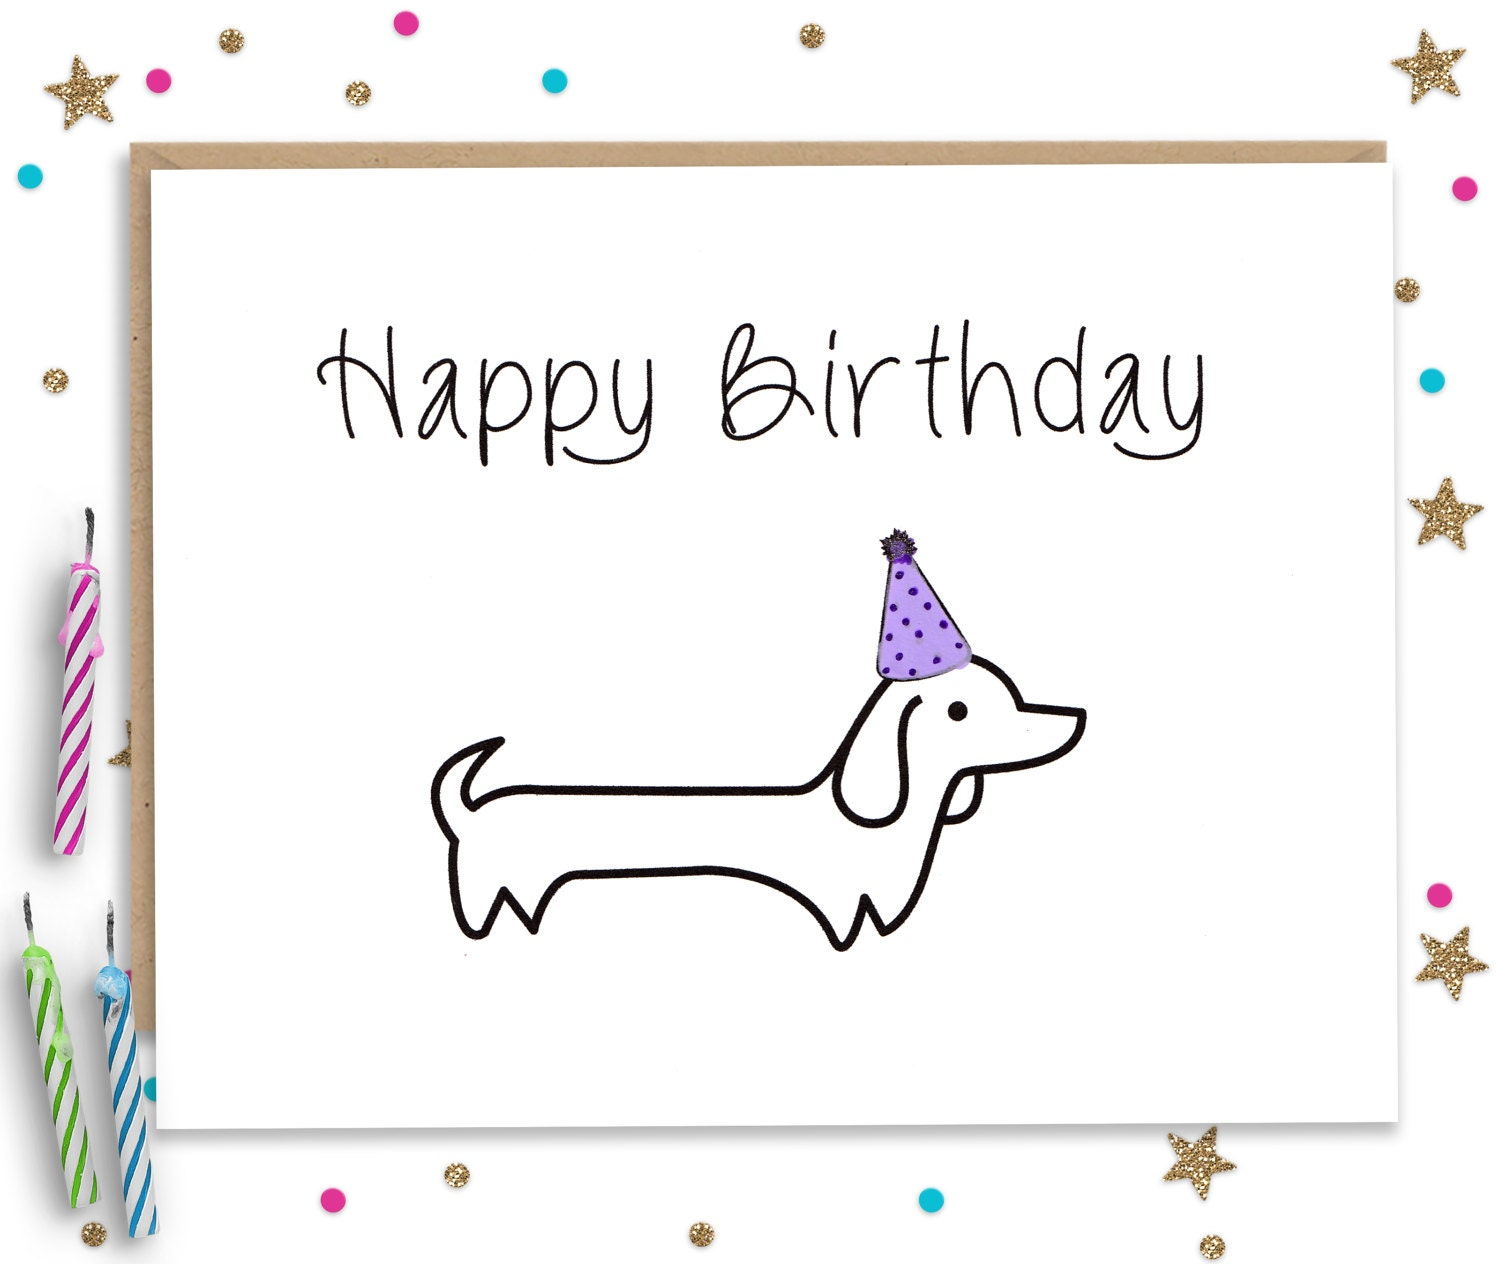 Dog birthday card – Birthday Card for Dog